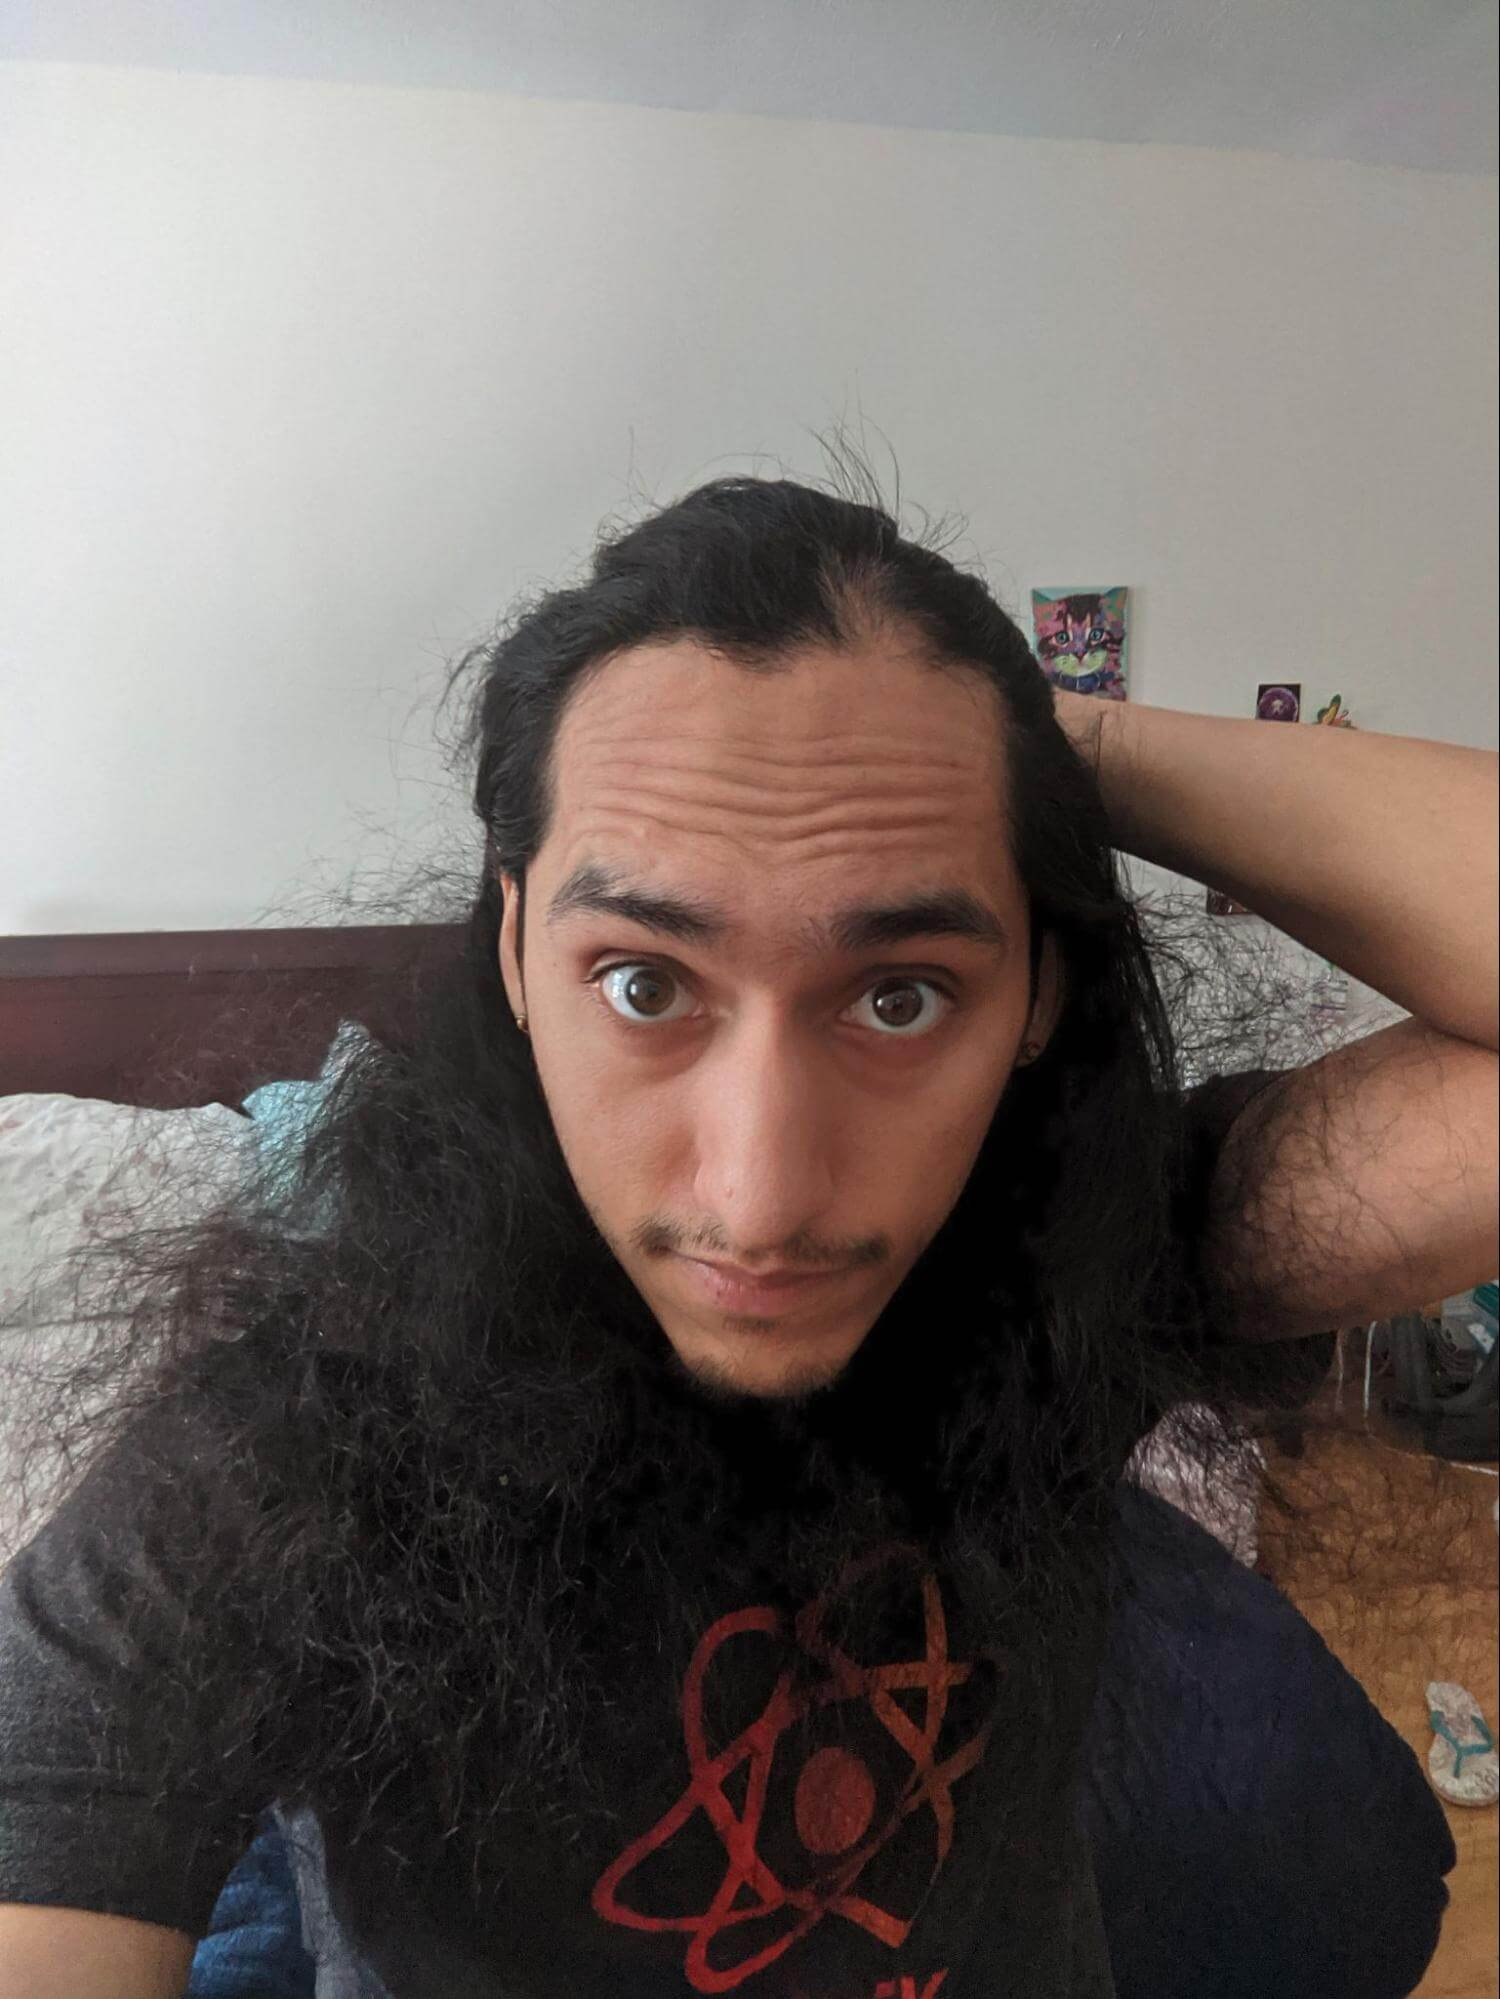 Steven Jimenez looking in the mirror noticing a patch of hair loss from alopecia